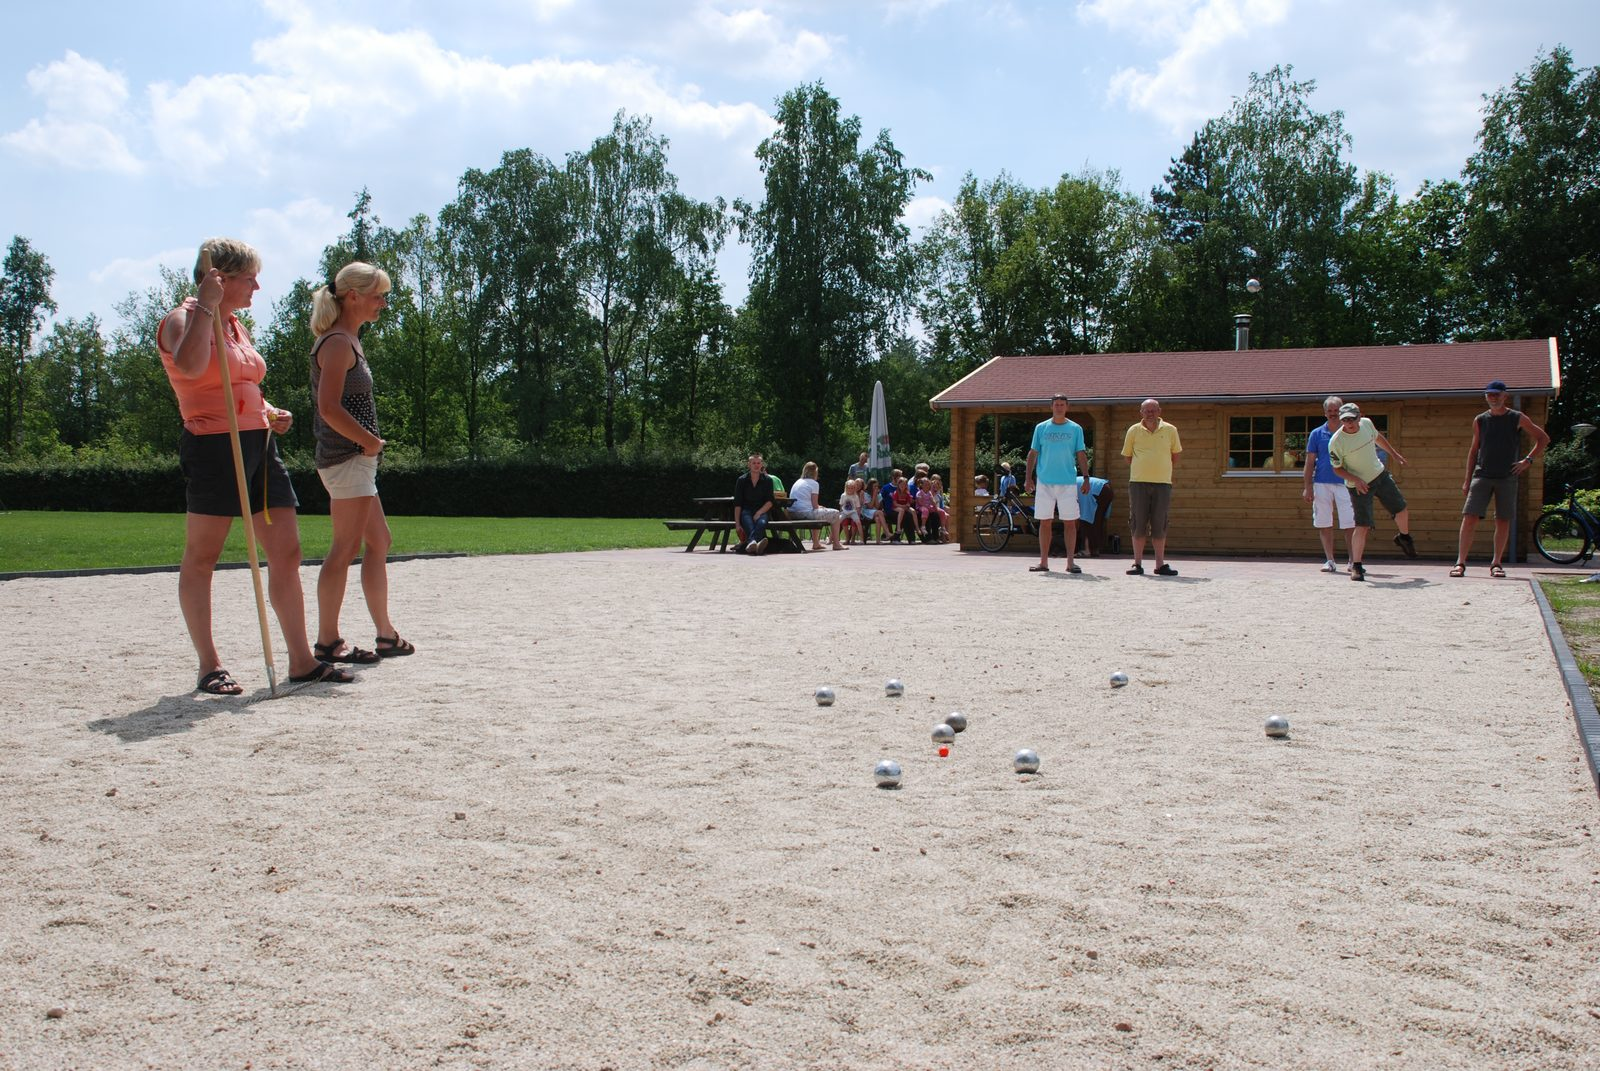 Pétanque at the campsite